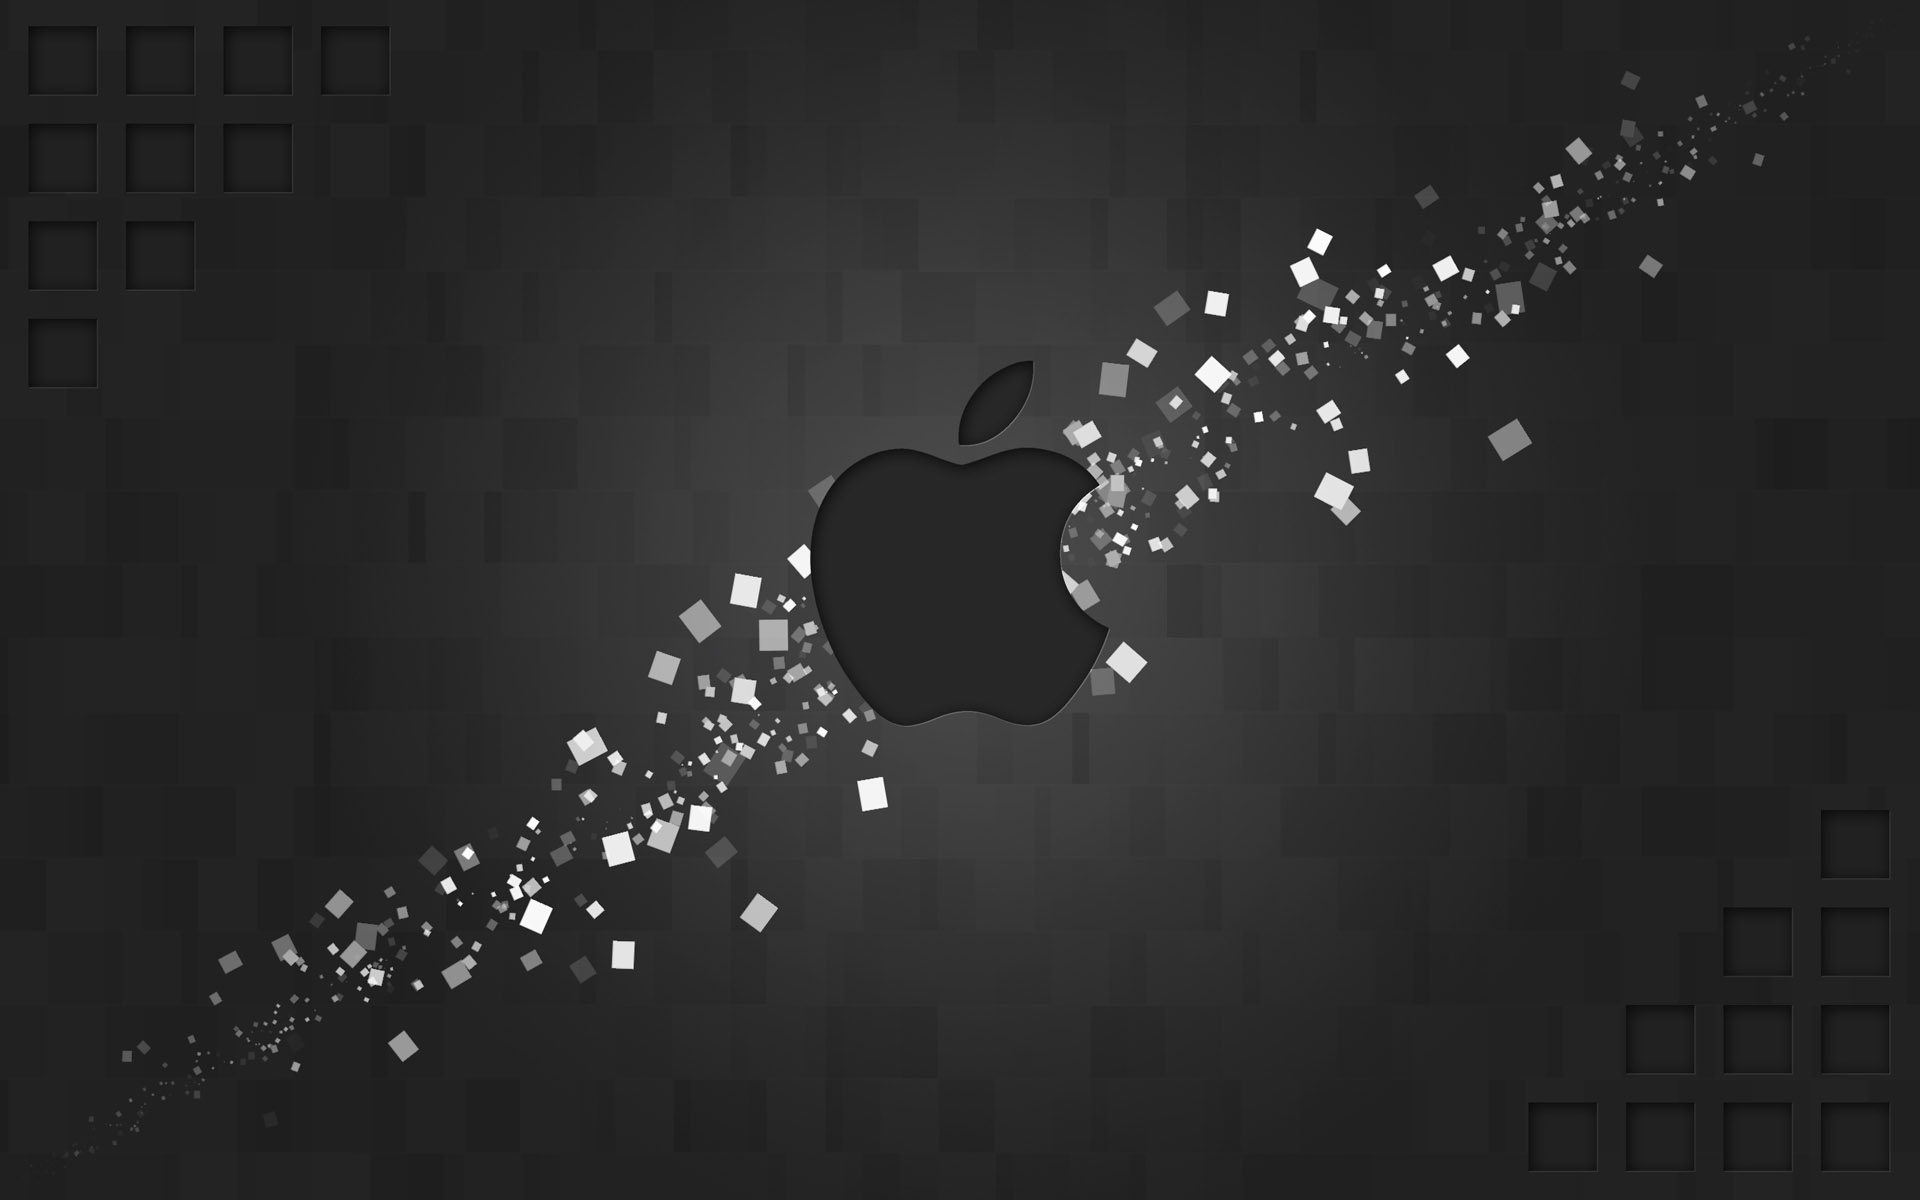 HD Apple wallpaper 18434